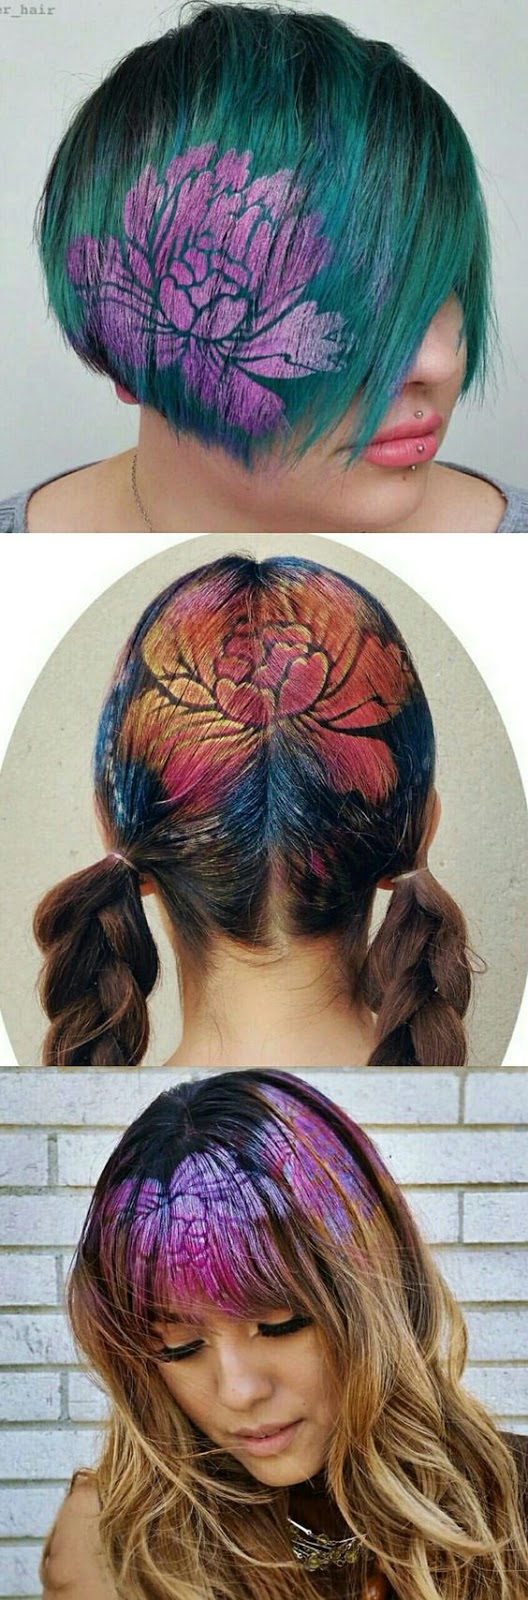 36 Hair Color Ideas That Are Totally Trending On Pinterest - hair stenciling